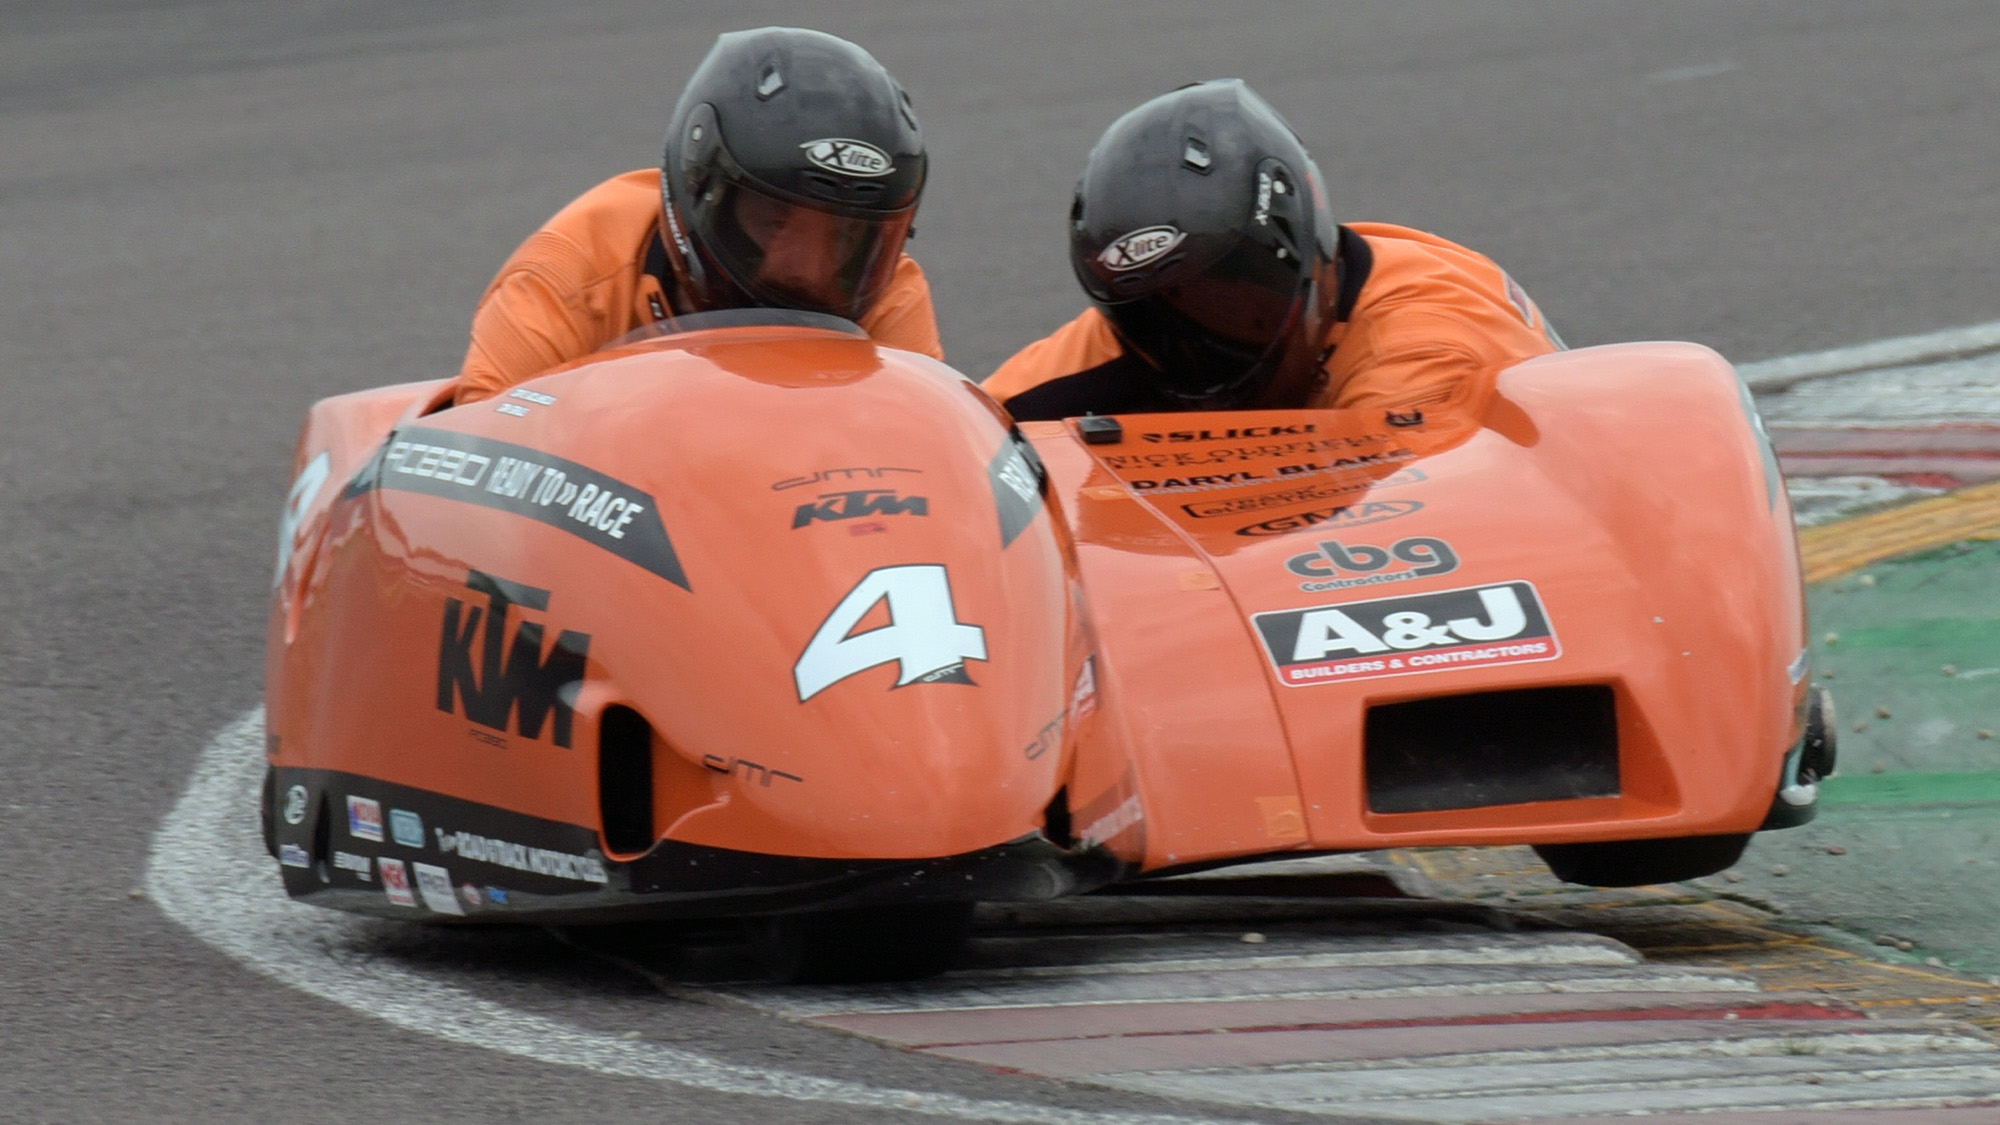 Dave Molyneux and Dan Sayle in KTM sidecar